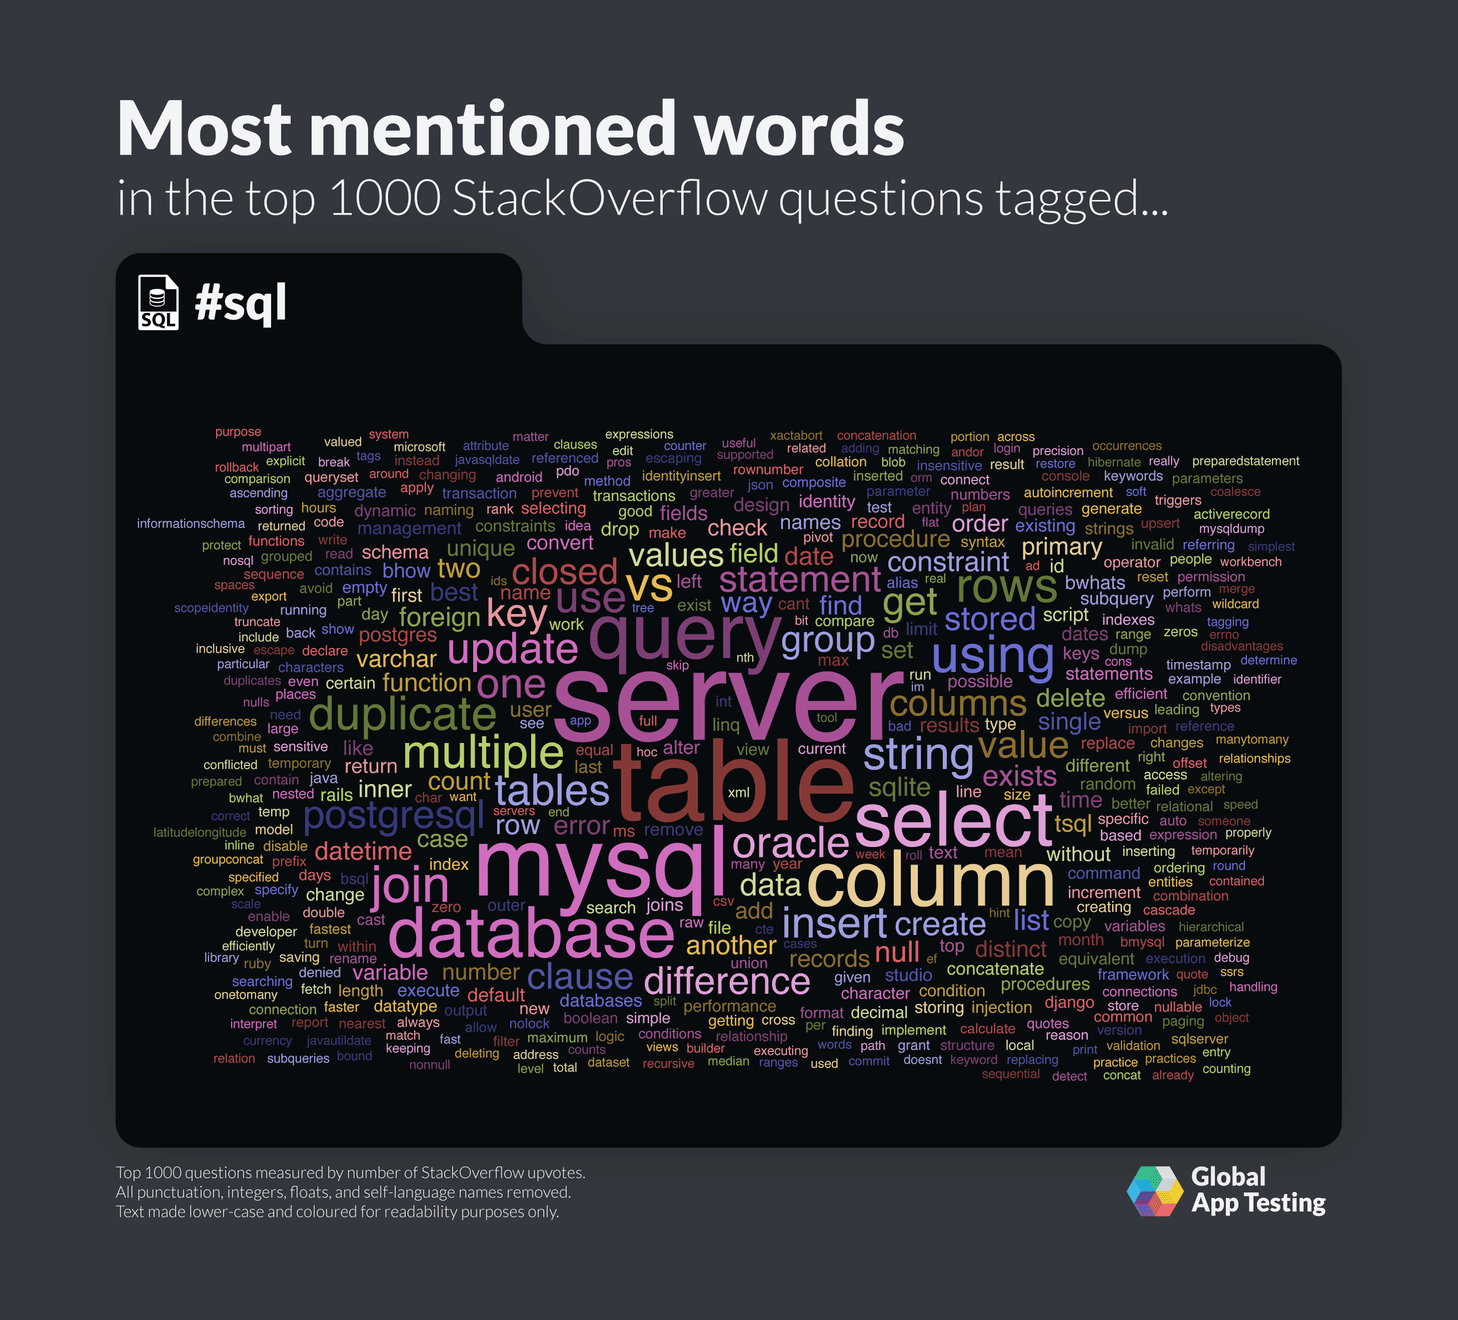 Most mentioned words for SQL on StackOverflow.